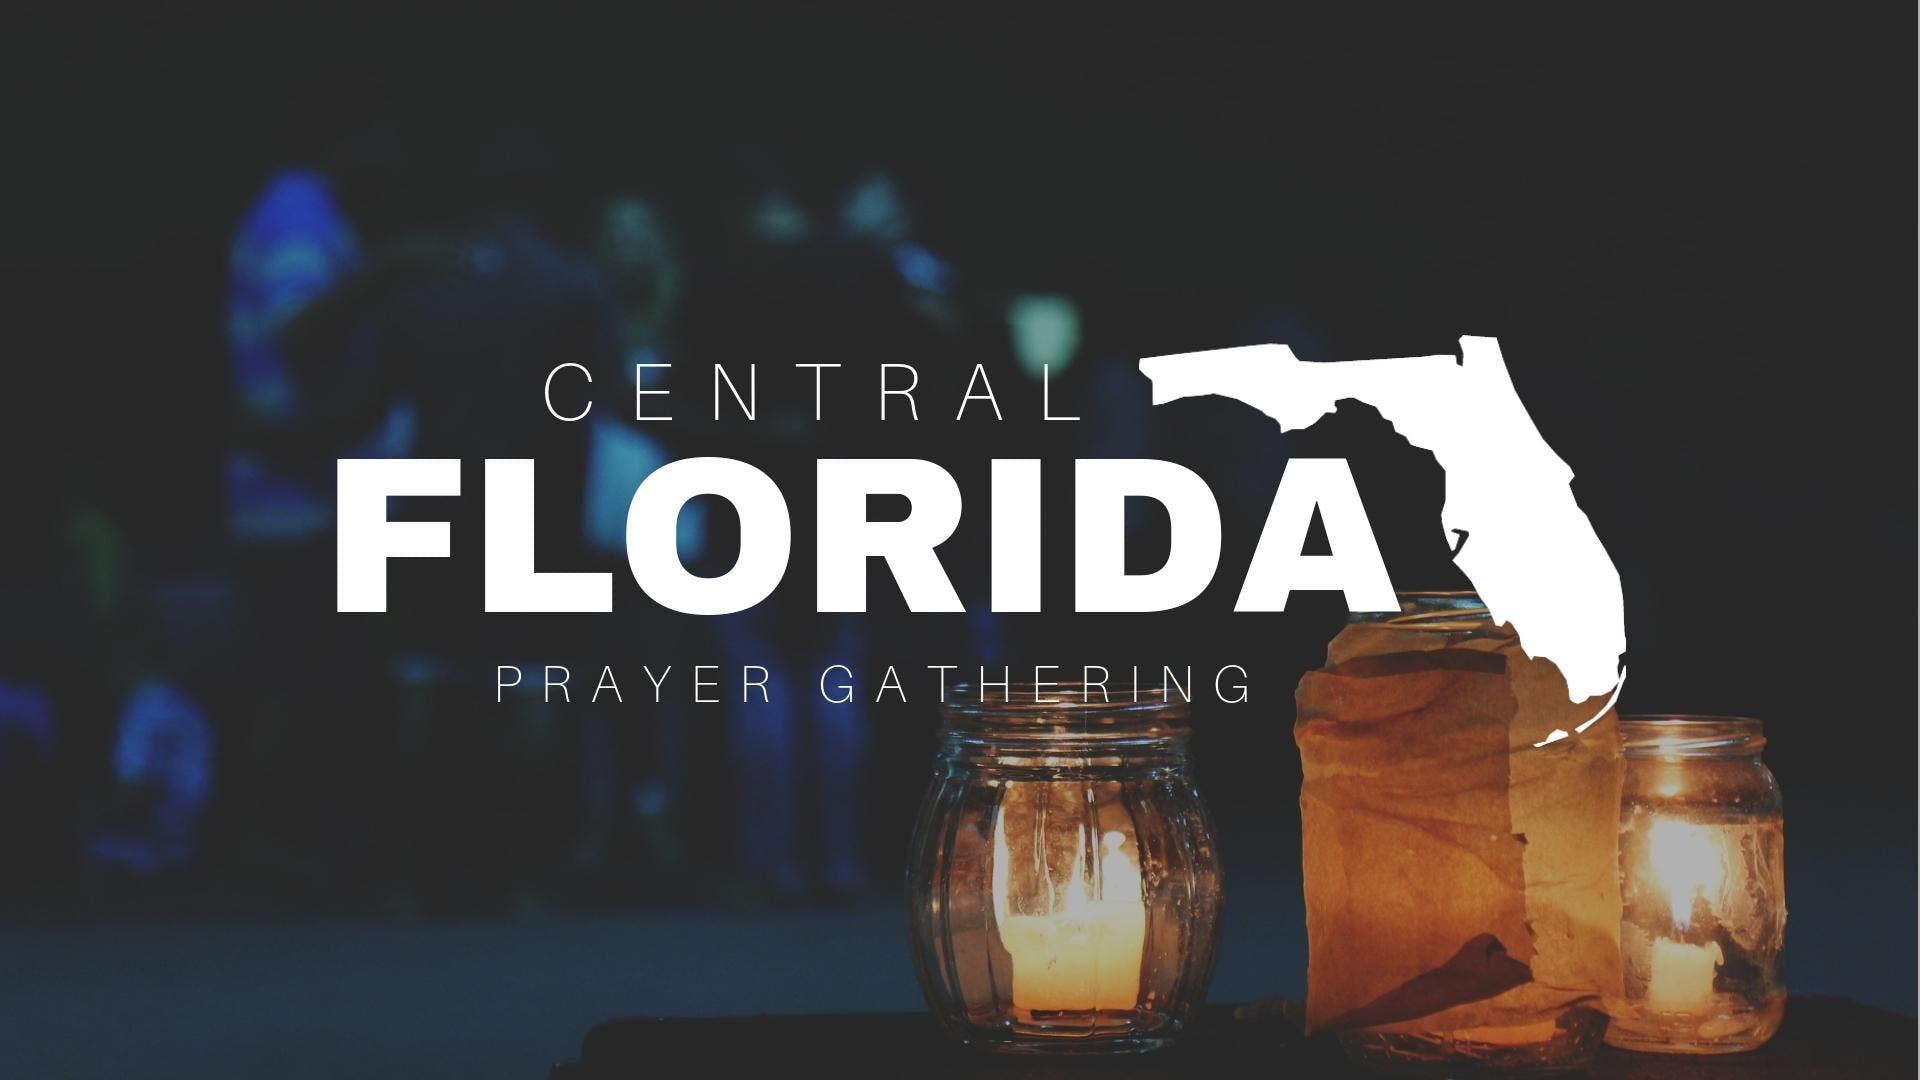 Central Florida Prayer Gathering at Casa De Oracion Internacional ...